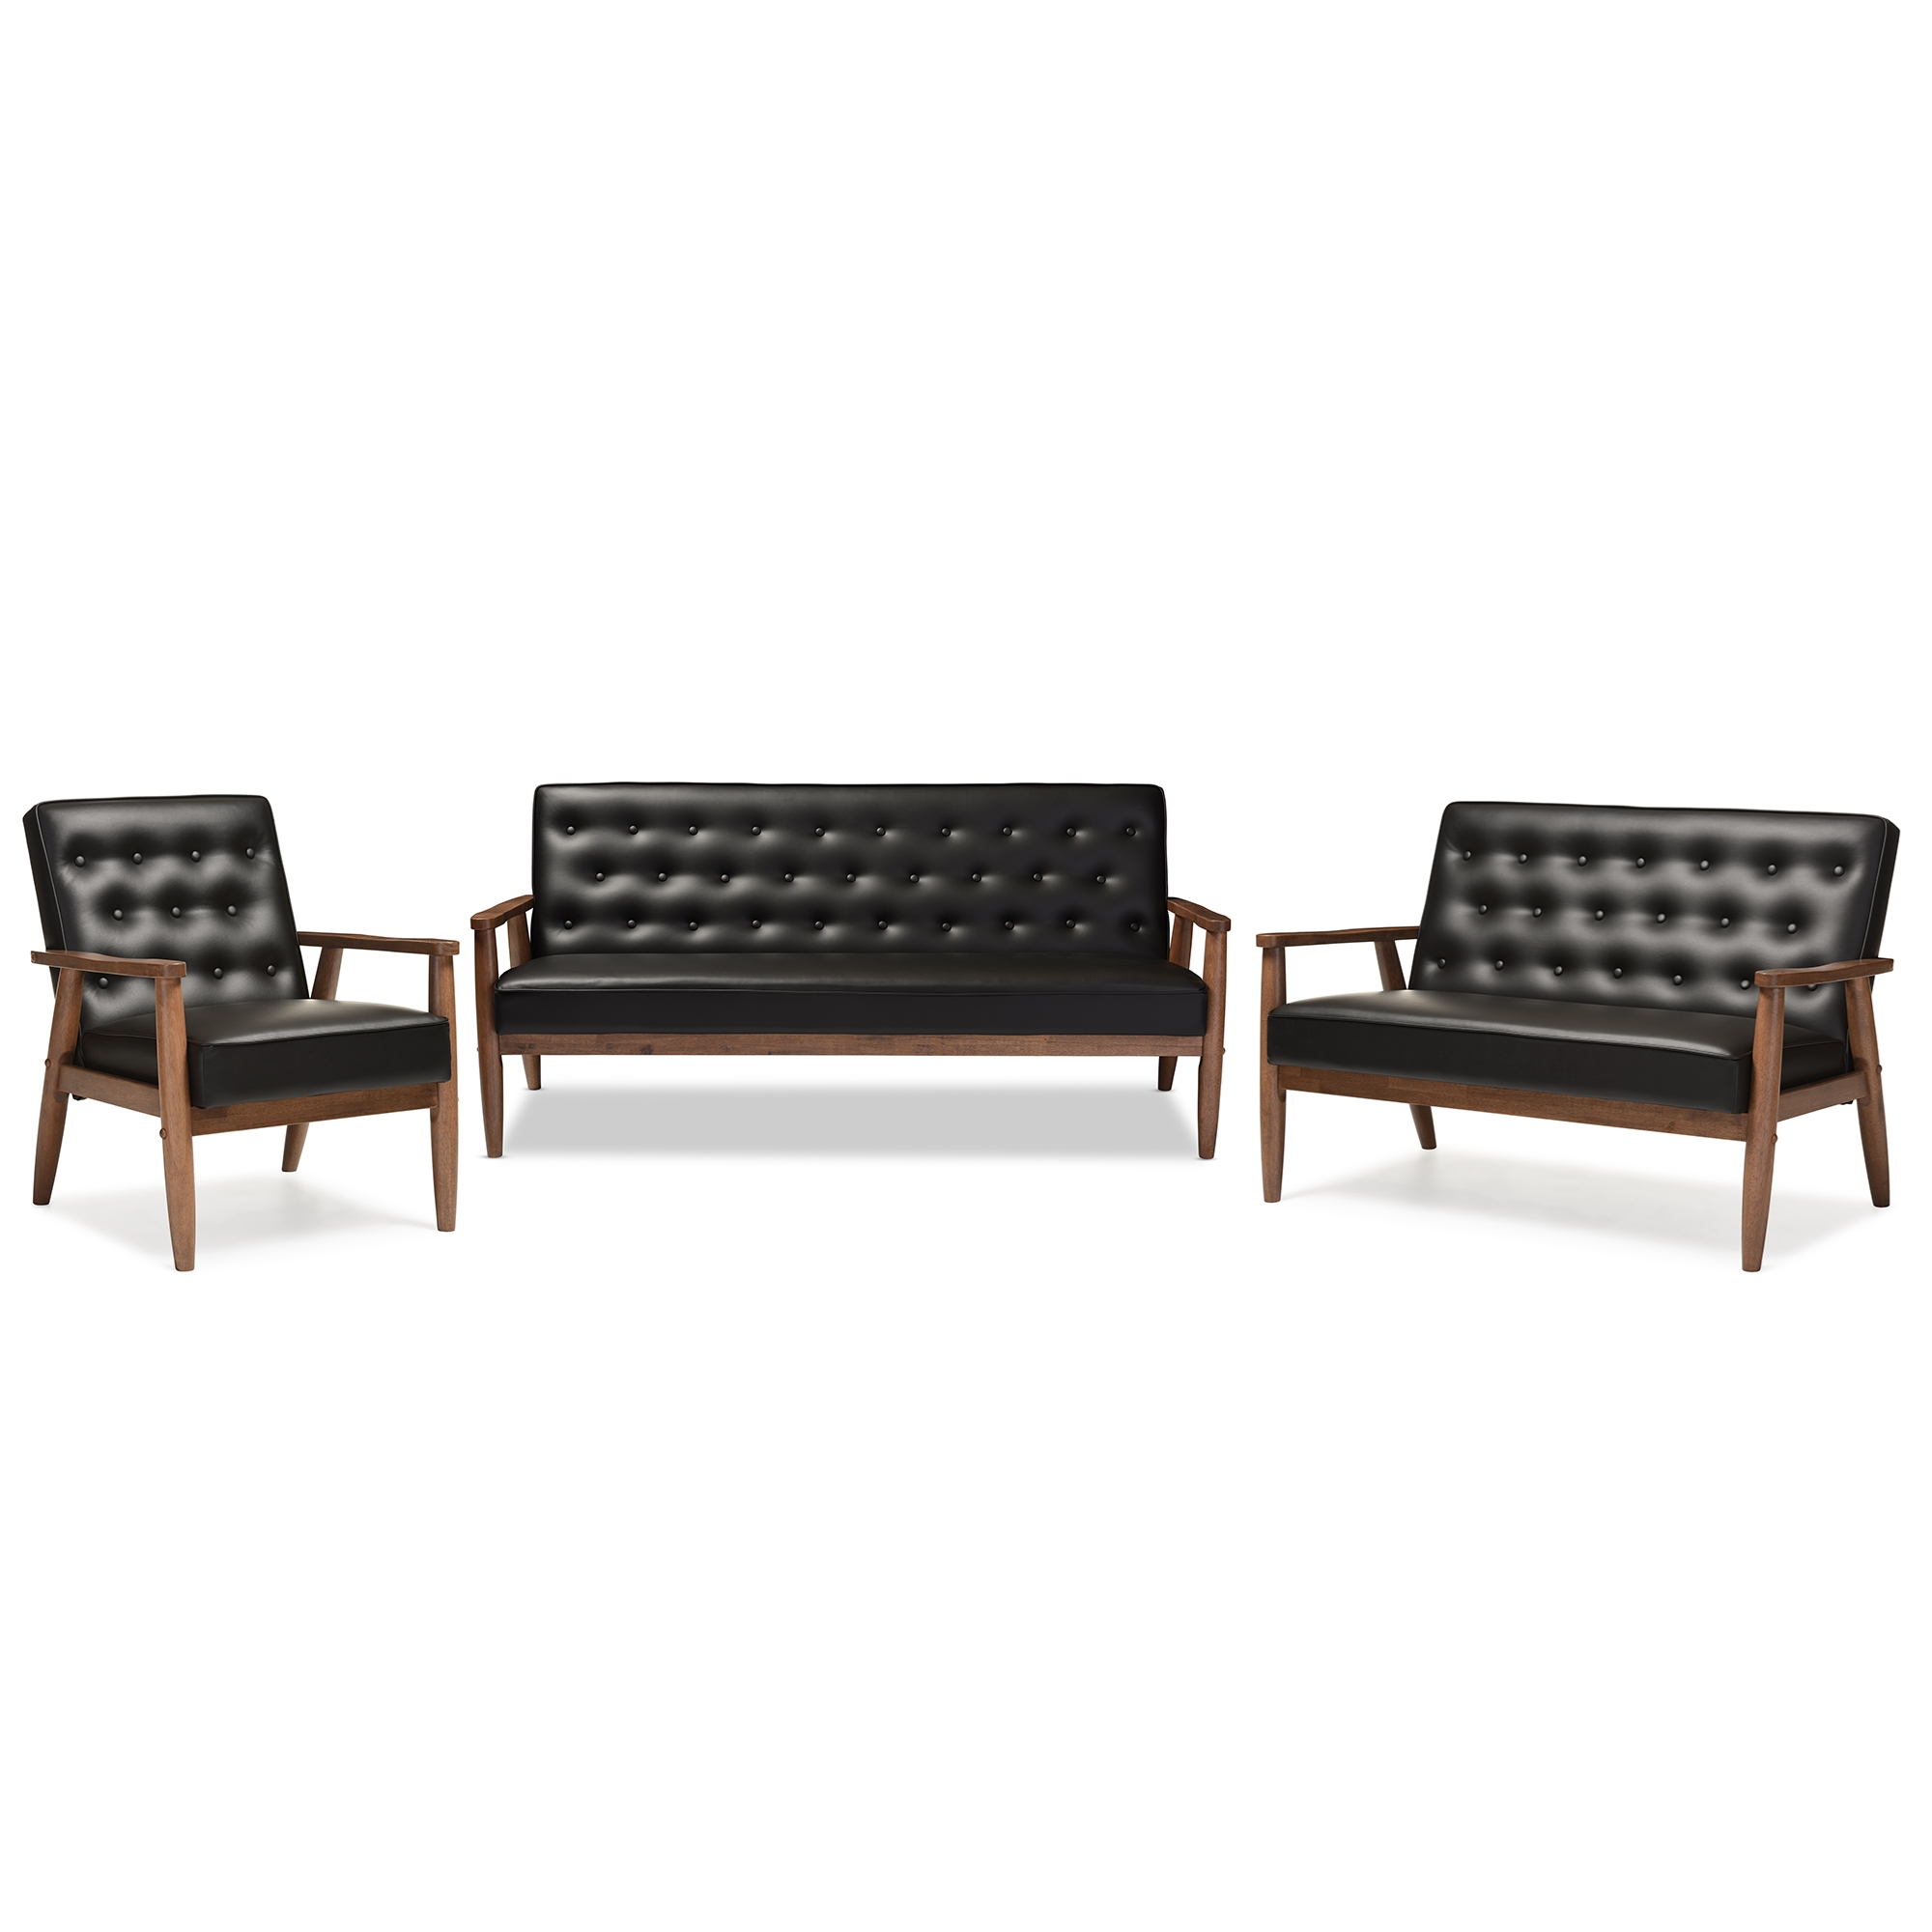 Wholesale Sofa Sets Wholesale Sofas Loveseats Wholesale Furniture